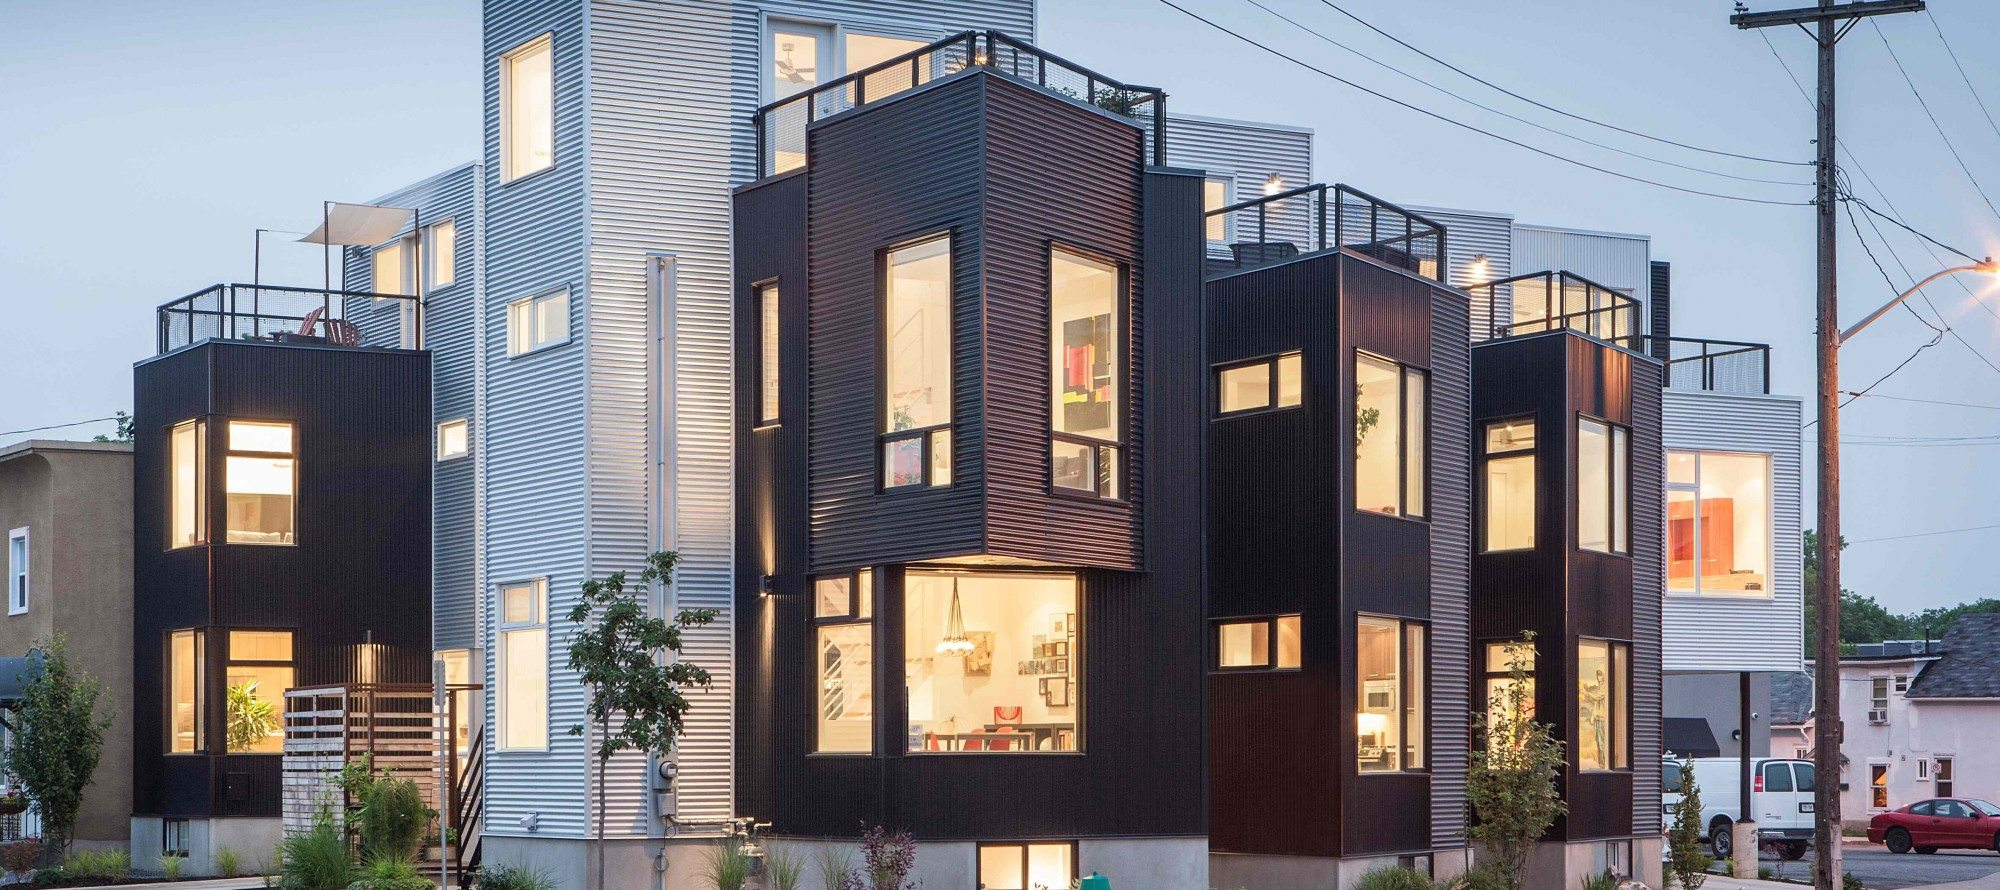 URBAN DESIGN: This Hintonburg infill recently won a city urban design award — and looked great doing it (check it out!)